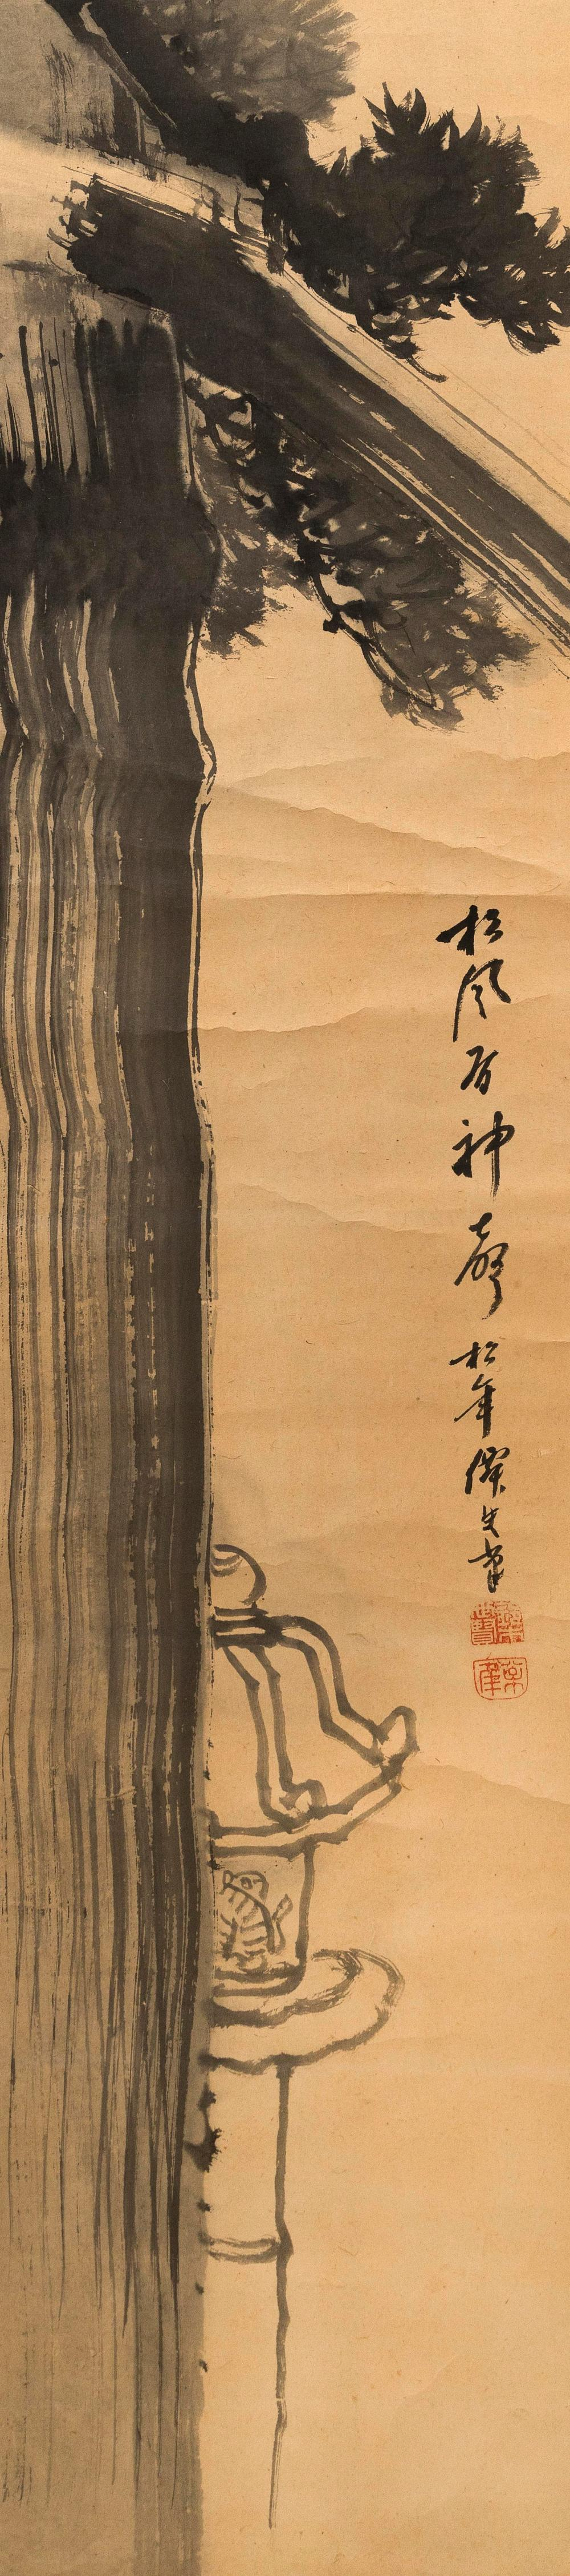 JAPANESE SCROLL PAINTING ON PAPER BY SUZUKI SHONEN (1849-1918) Depicts a temple lantern partially obscured by a temple. Signed and s...